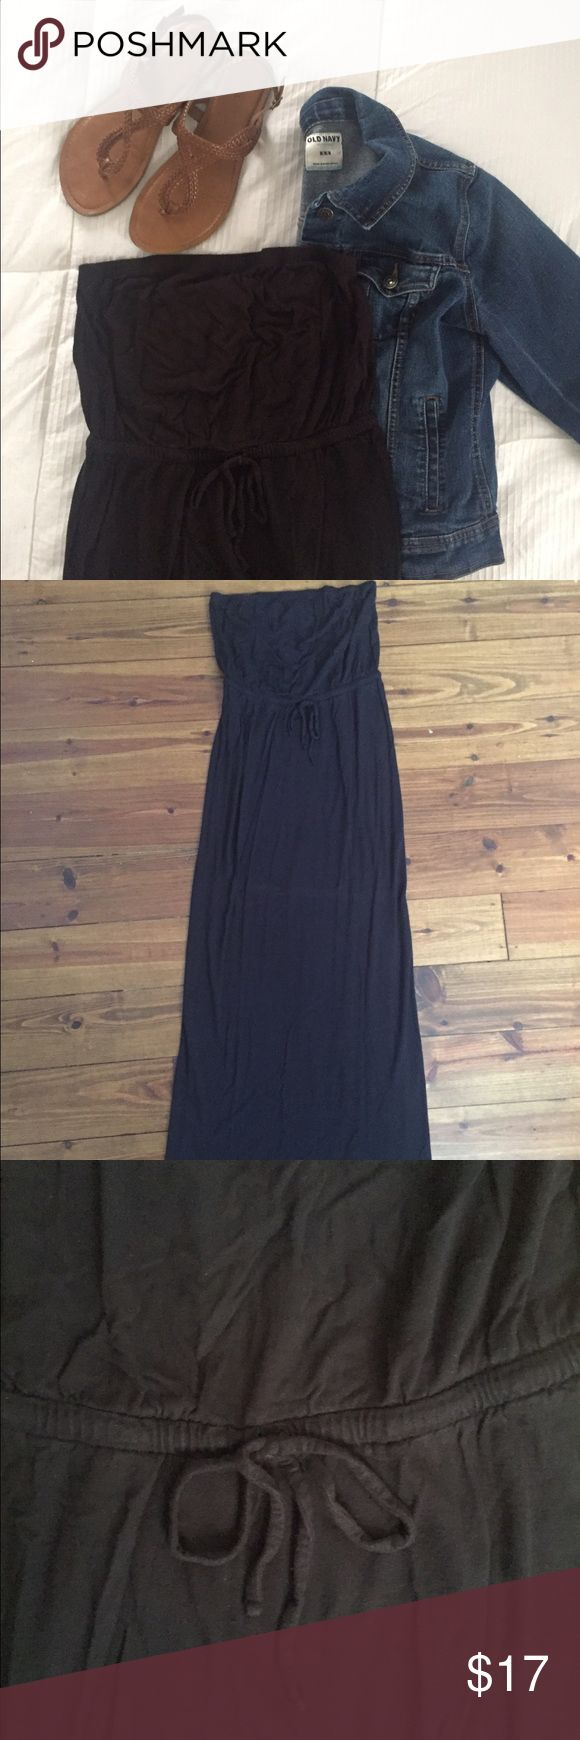 "Old Navy Black Strapless Maxi Dress 👗 Old Navy Black Strapless Maxi Dress with Tied Waist. I'm 5'7"" and the length is perfect. Shoes and Jacket not included. Old Navy Dresses Maxi"